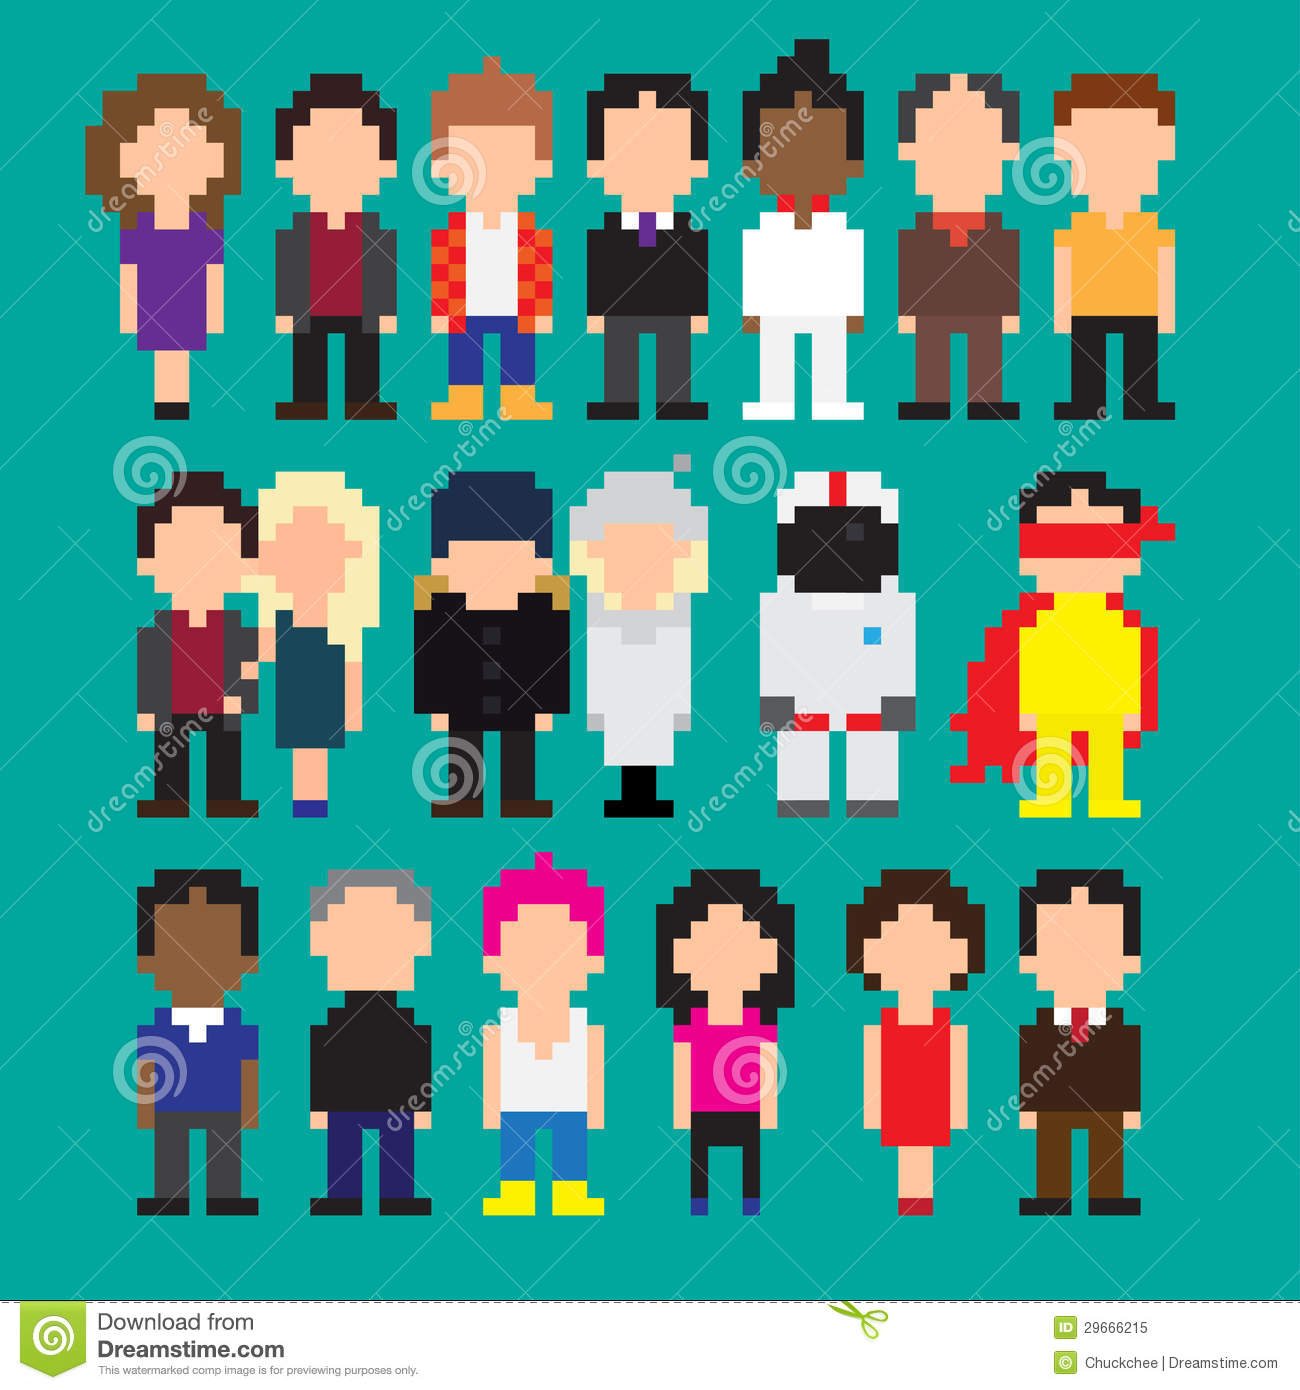 One Line Pixel Art : Pixel art people stock illustration image of business